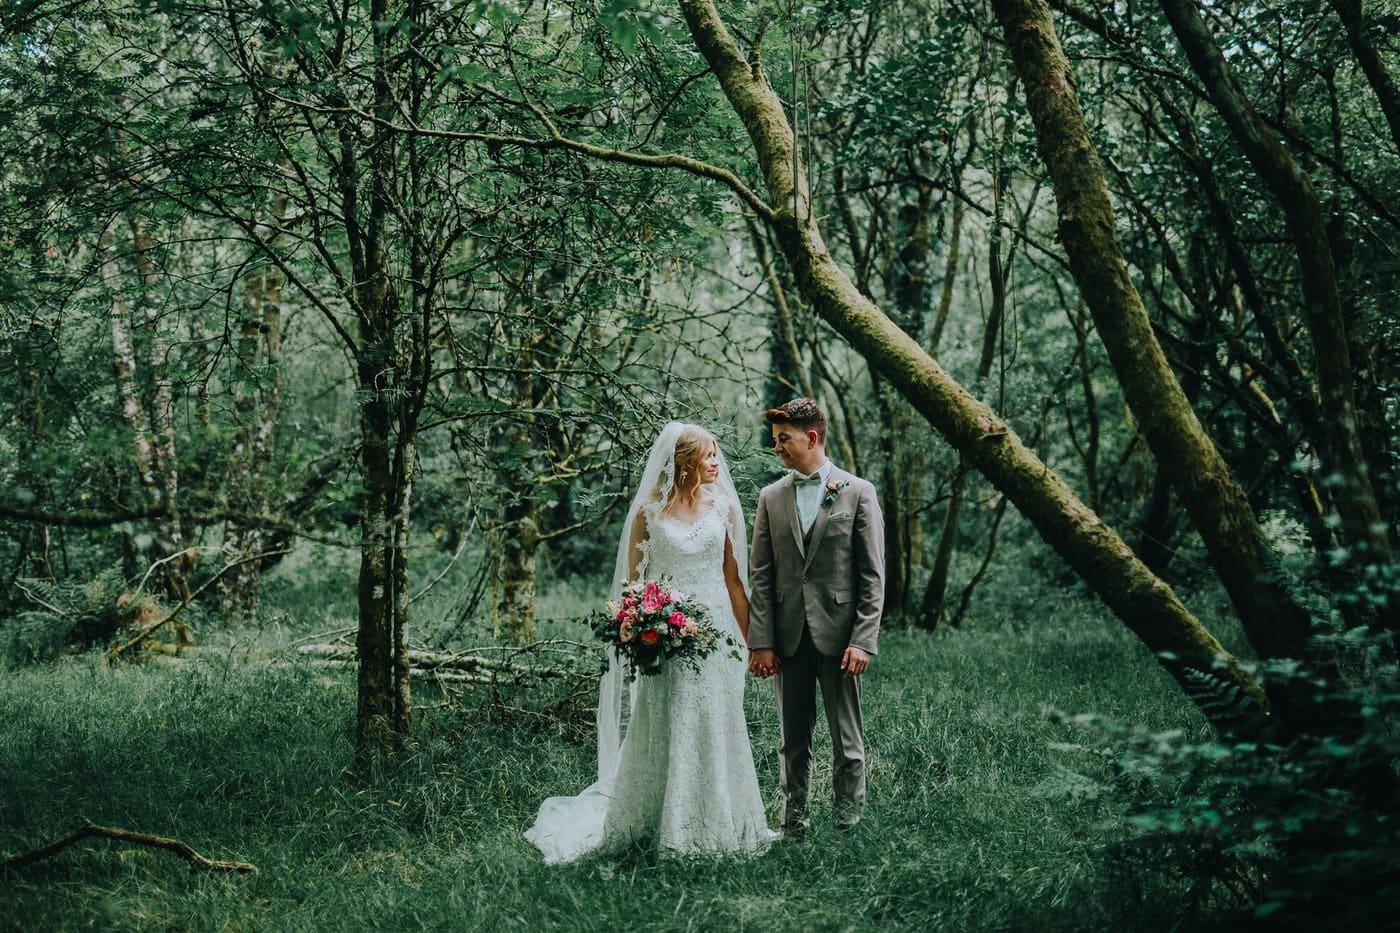 Alternative wedding photographers in Northern Ireland